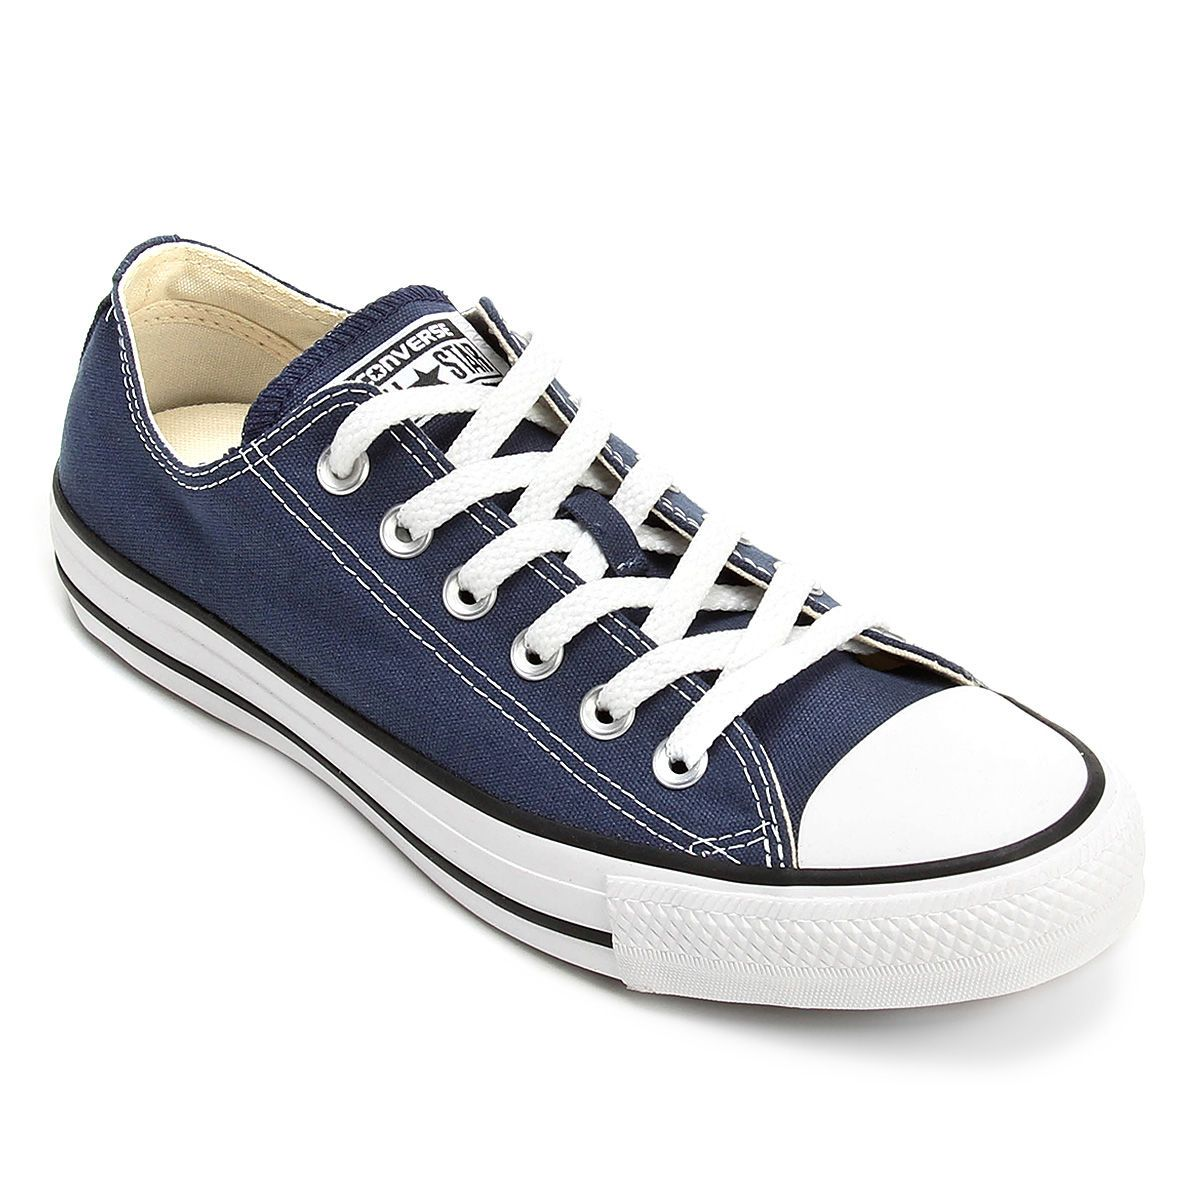 8027ed4da1 Tênis Converse All Star Ct As Core Ox - Marinho e Preto